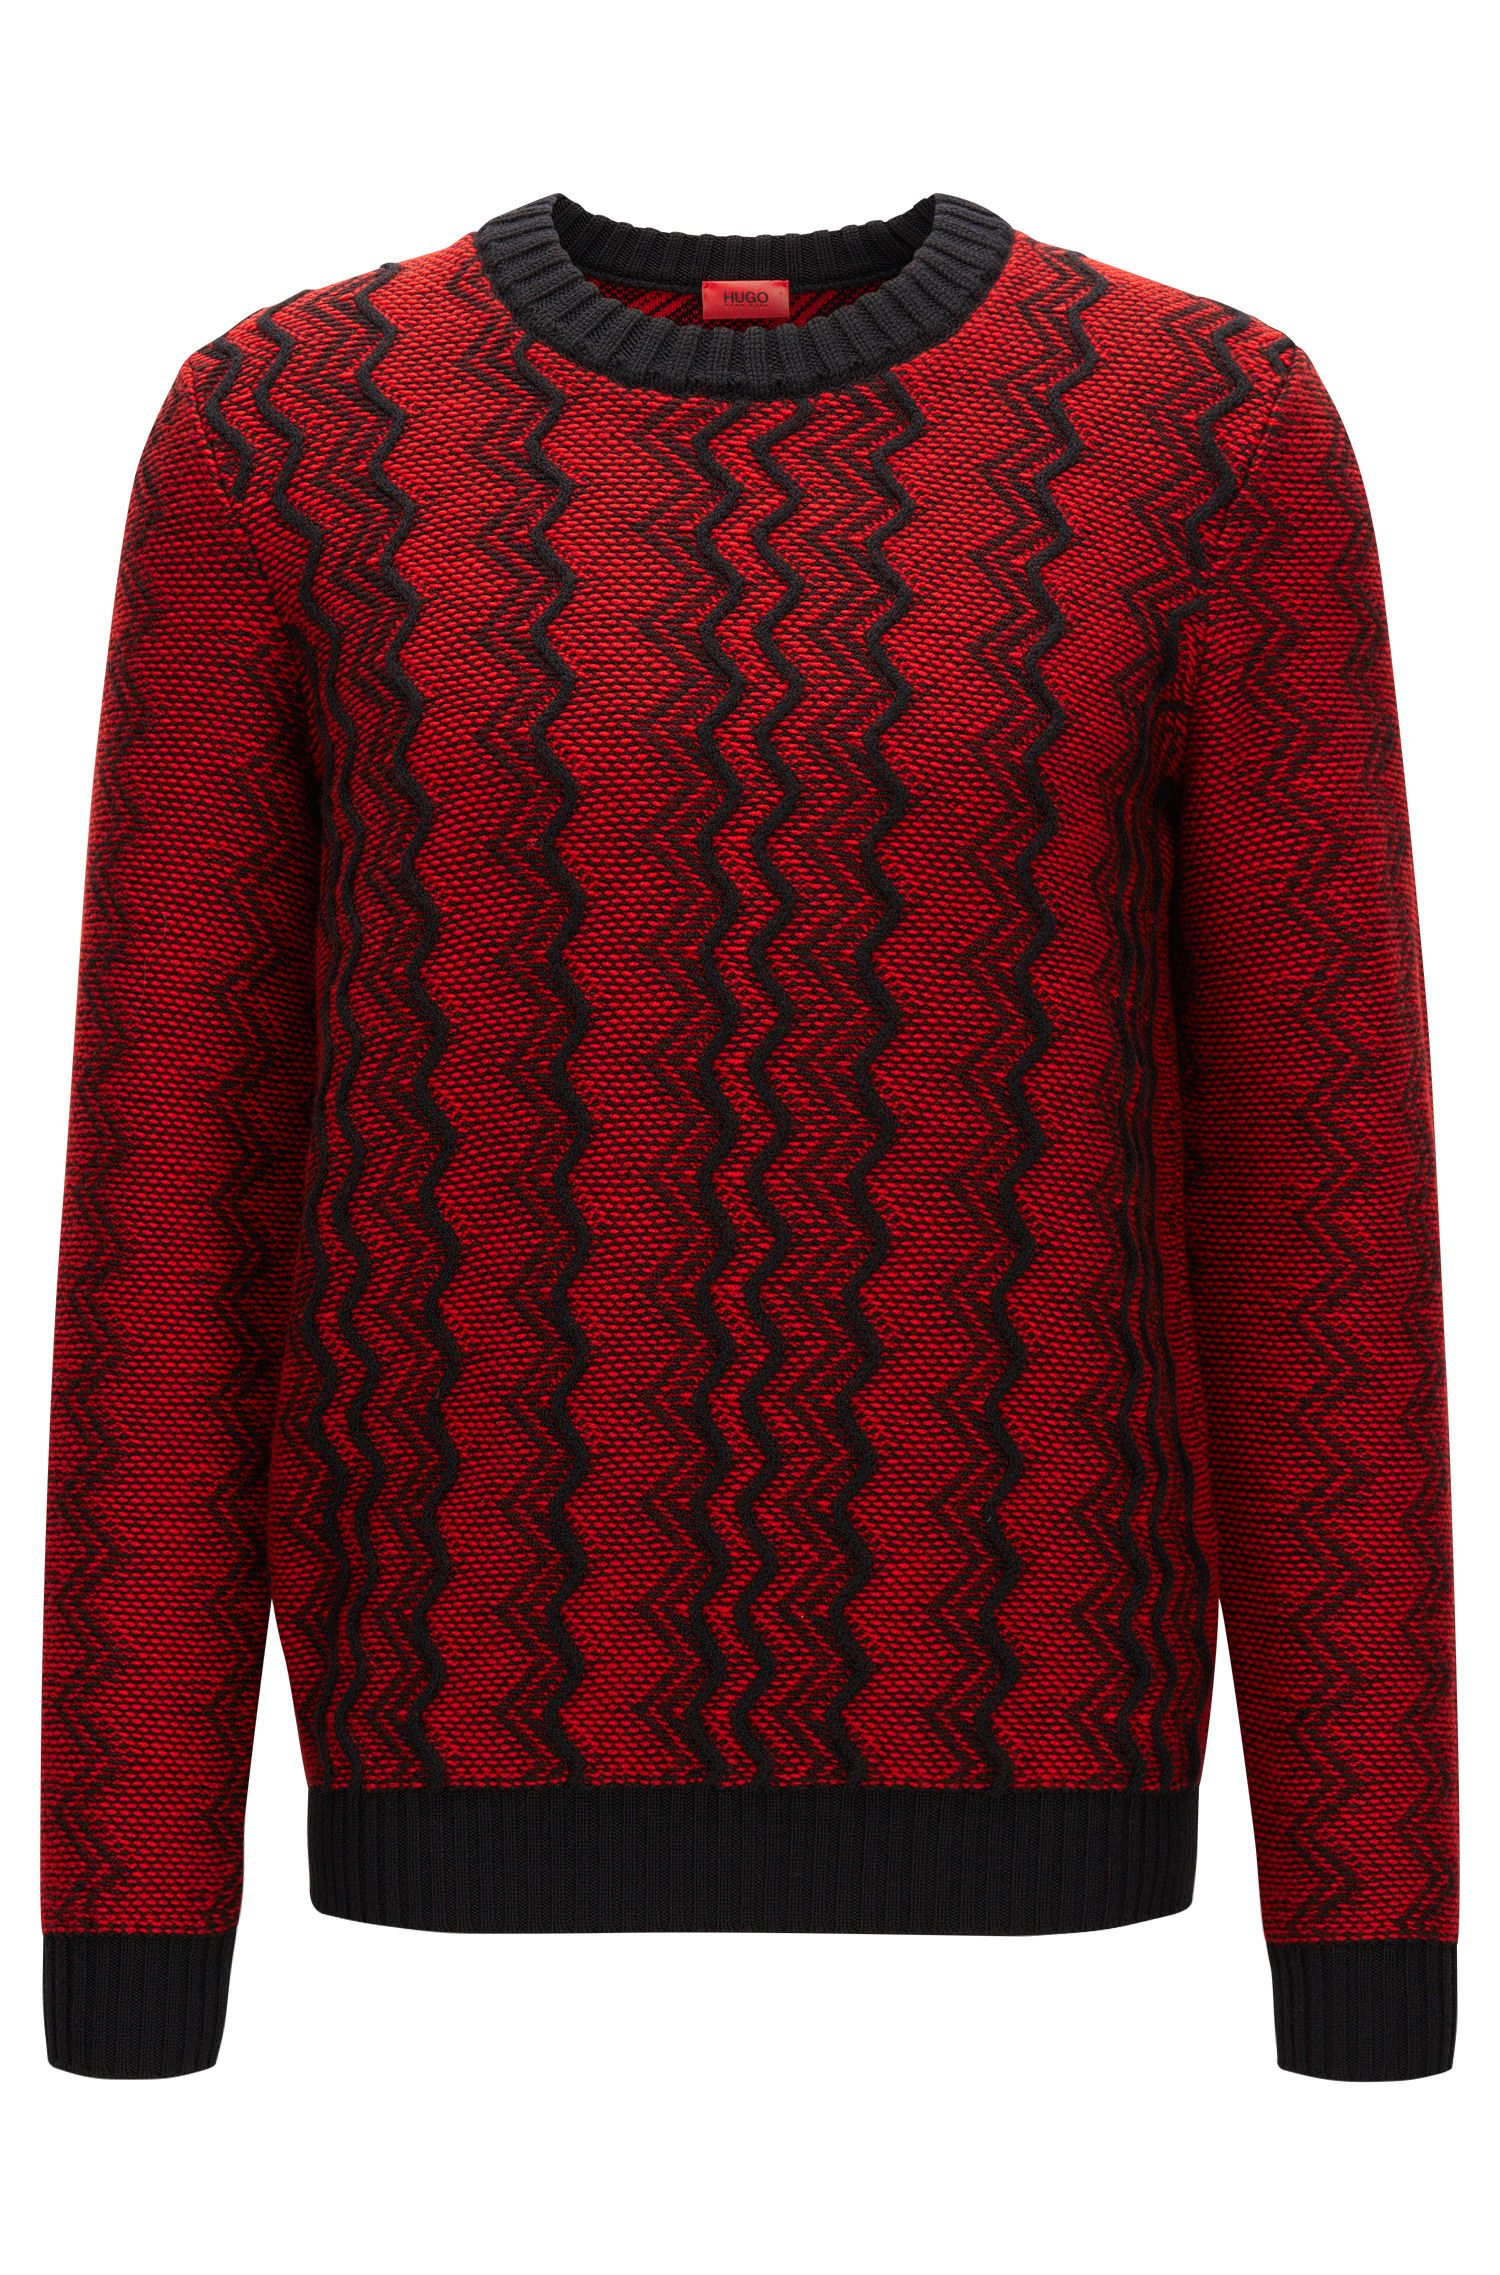 Zigzag sweater in virgin wool jacquard